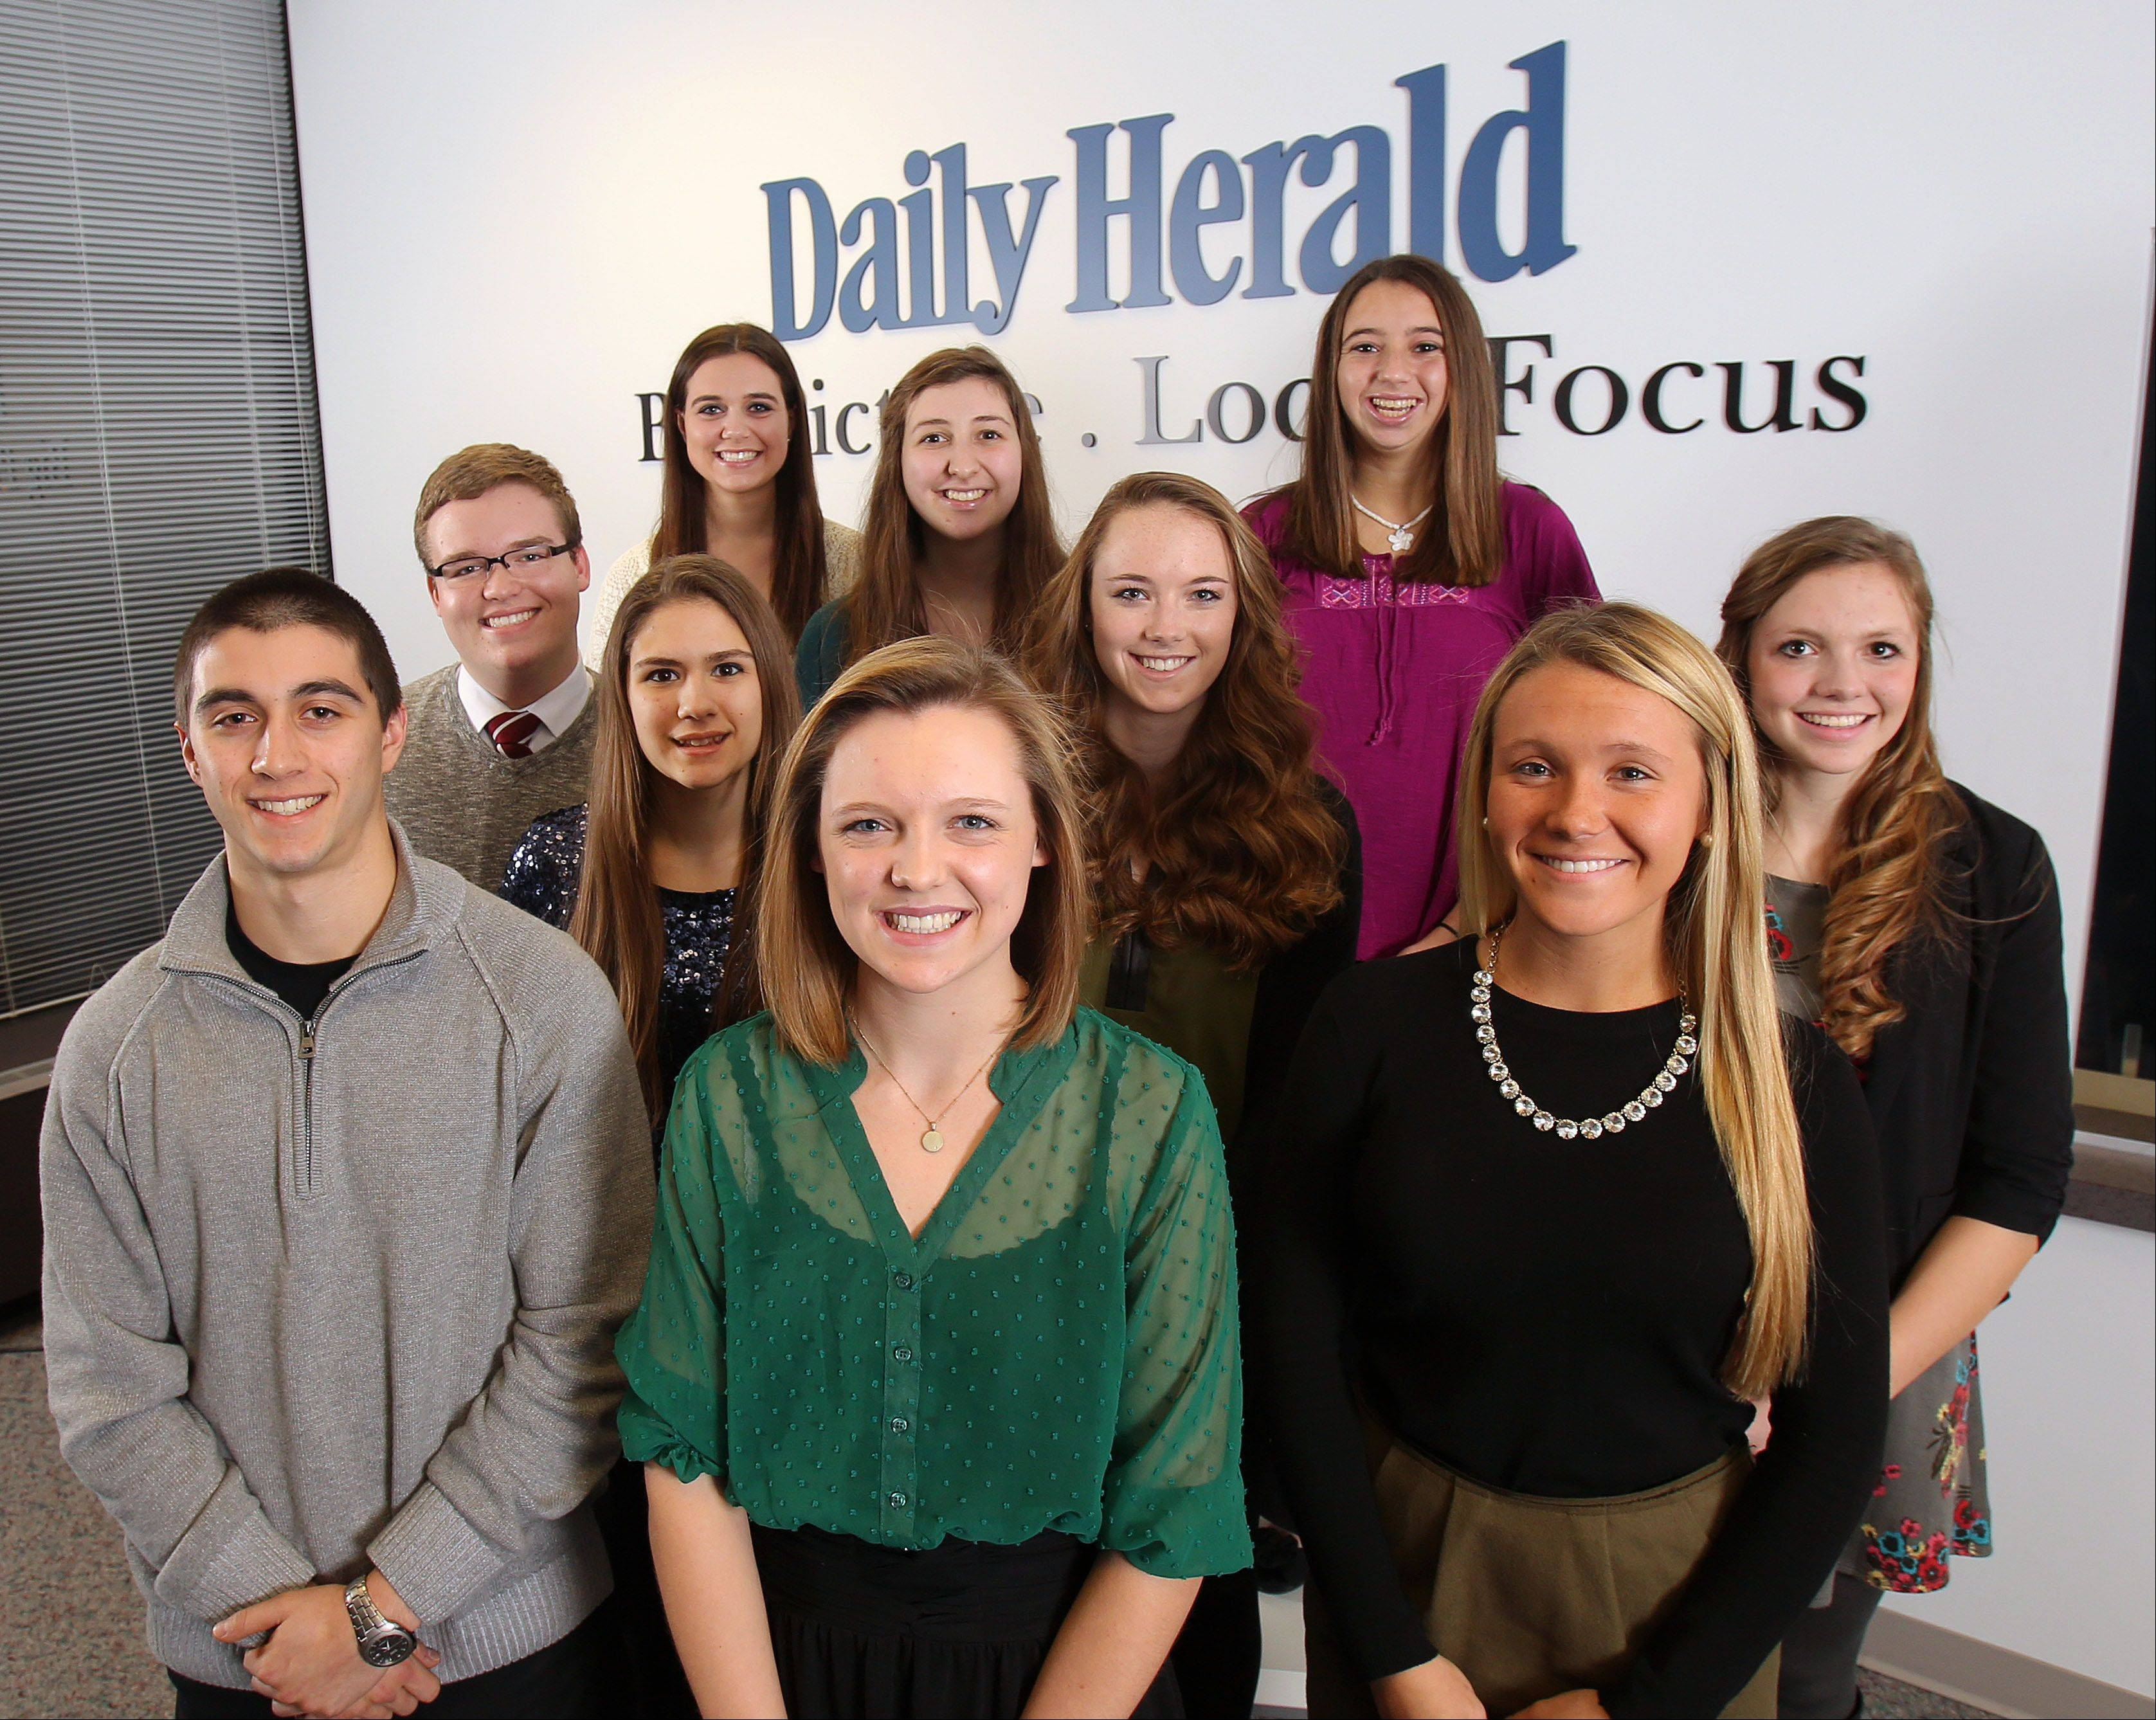 Meet the 2013-14 Lake County Leadership Team. Front row, from left: Sam Panitch, Adlai E. Stevenson High School; Allie Bujak, Libertyville High School and Annie Kotlarz, Woodlands Academy of the Sacred Heart. Middle row: Charlie Suhling, Warren Township High School; Faith Gazdzicki, Round Lake High School; Emily Prey, Libertyville High School; Paige Vaughn, Grayslake Central. Back row from left: Annalisa Roncone, Lakes Community High School; Shannon Pedersen, Grant High School and Rachel Jacoby, Vernon Hills High School.